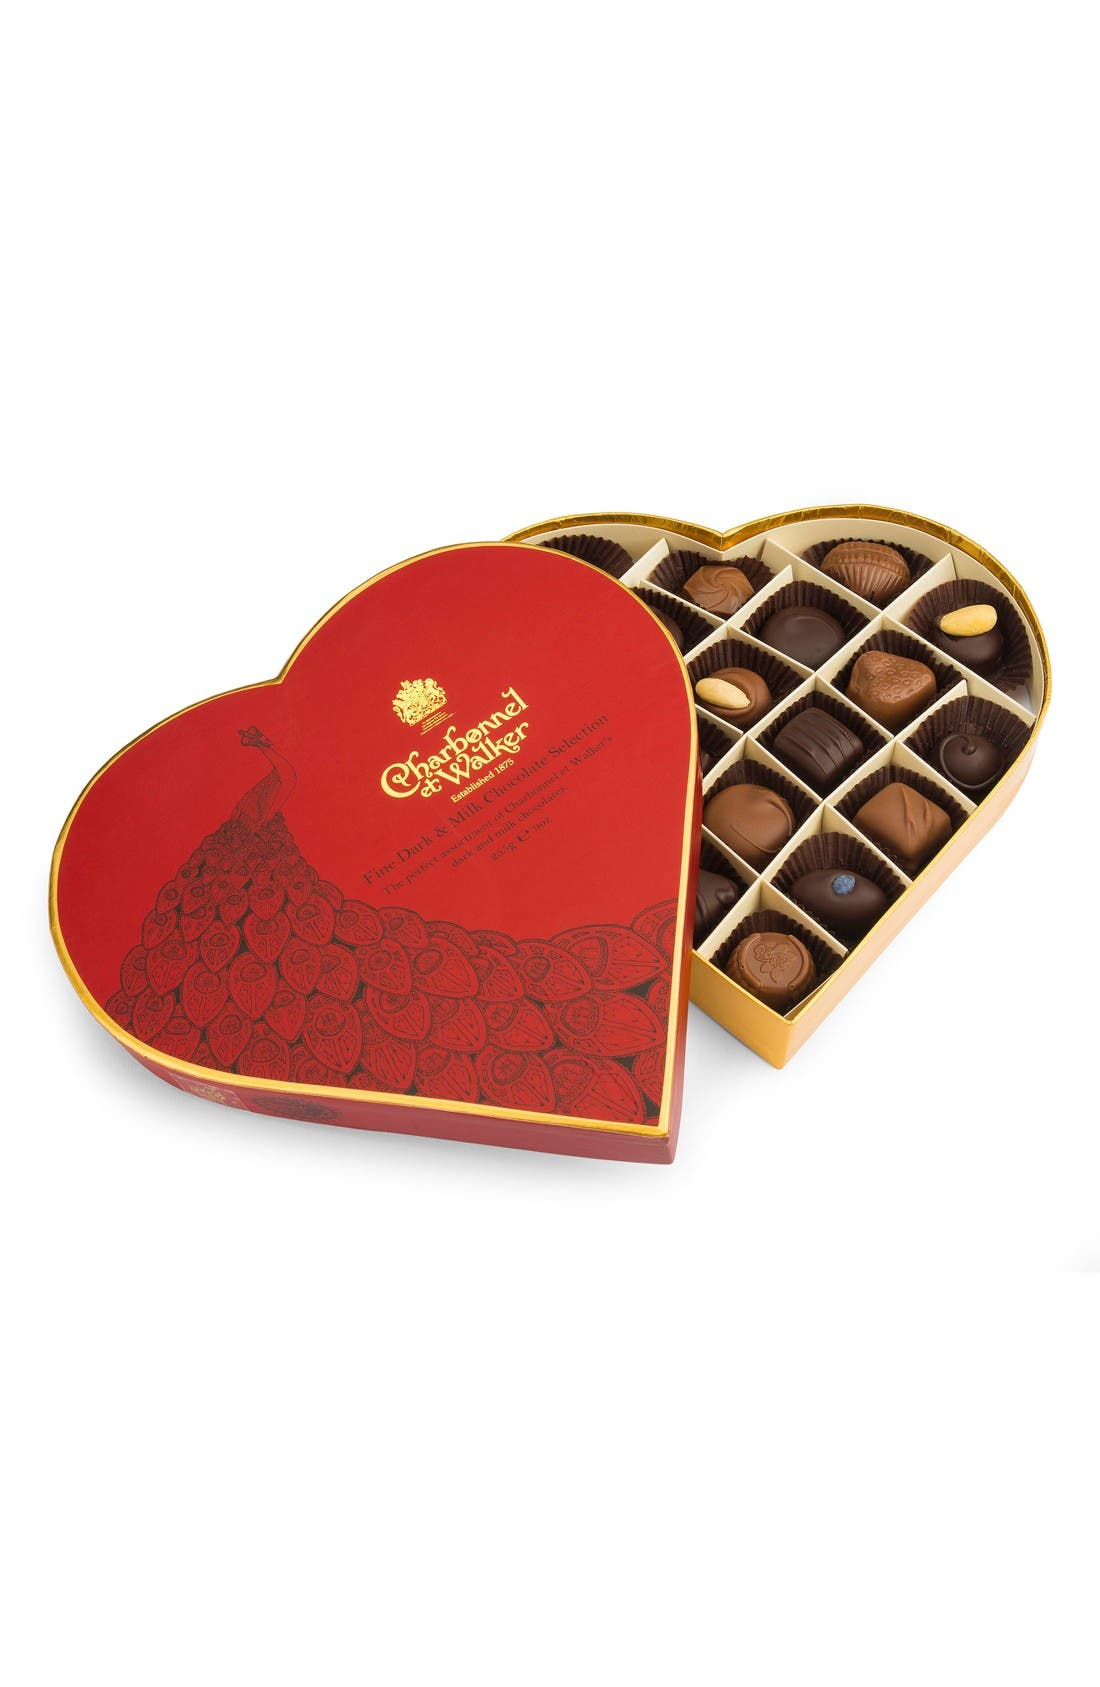 Charbonnel et Walker Assorted Chocolates in Heart Shaped Gift Box